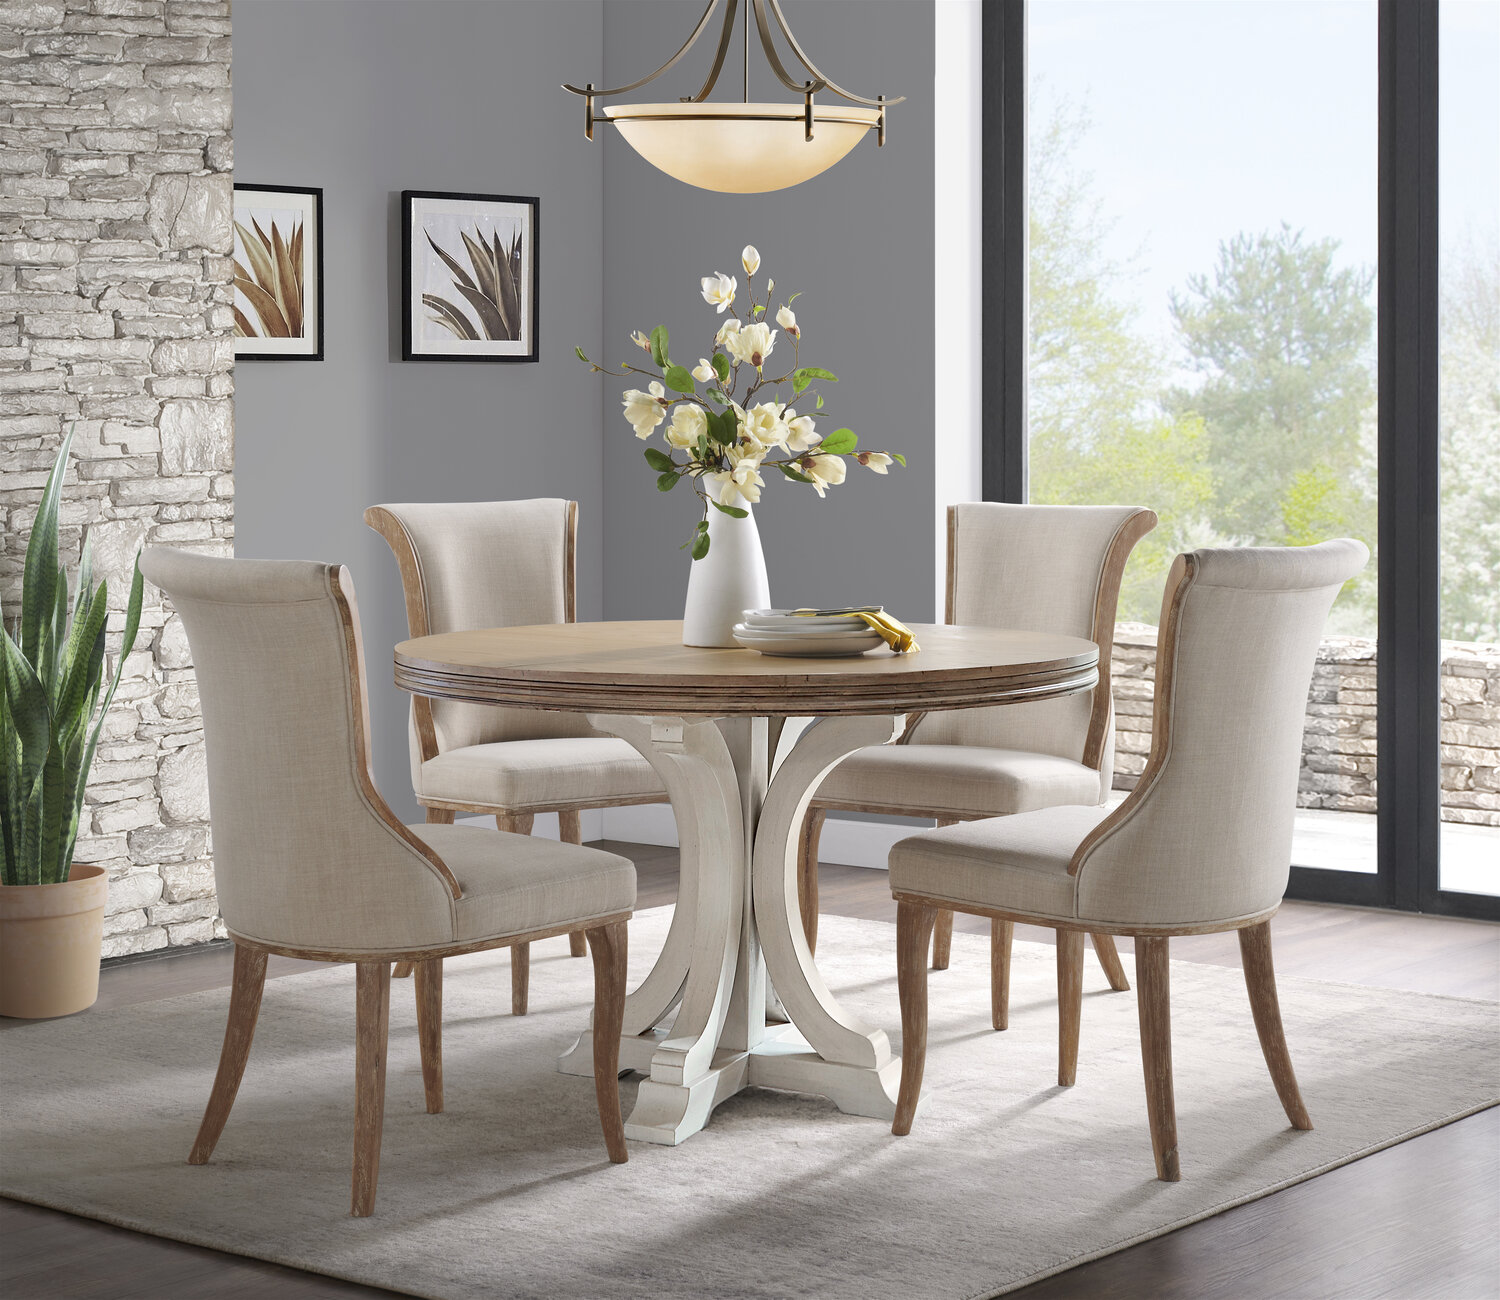 Dining Chairs New Ridge Home Goods, Home Goods Chairs Dining Room